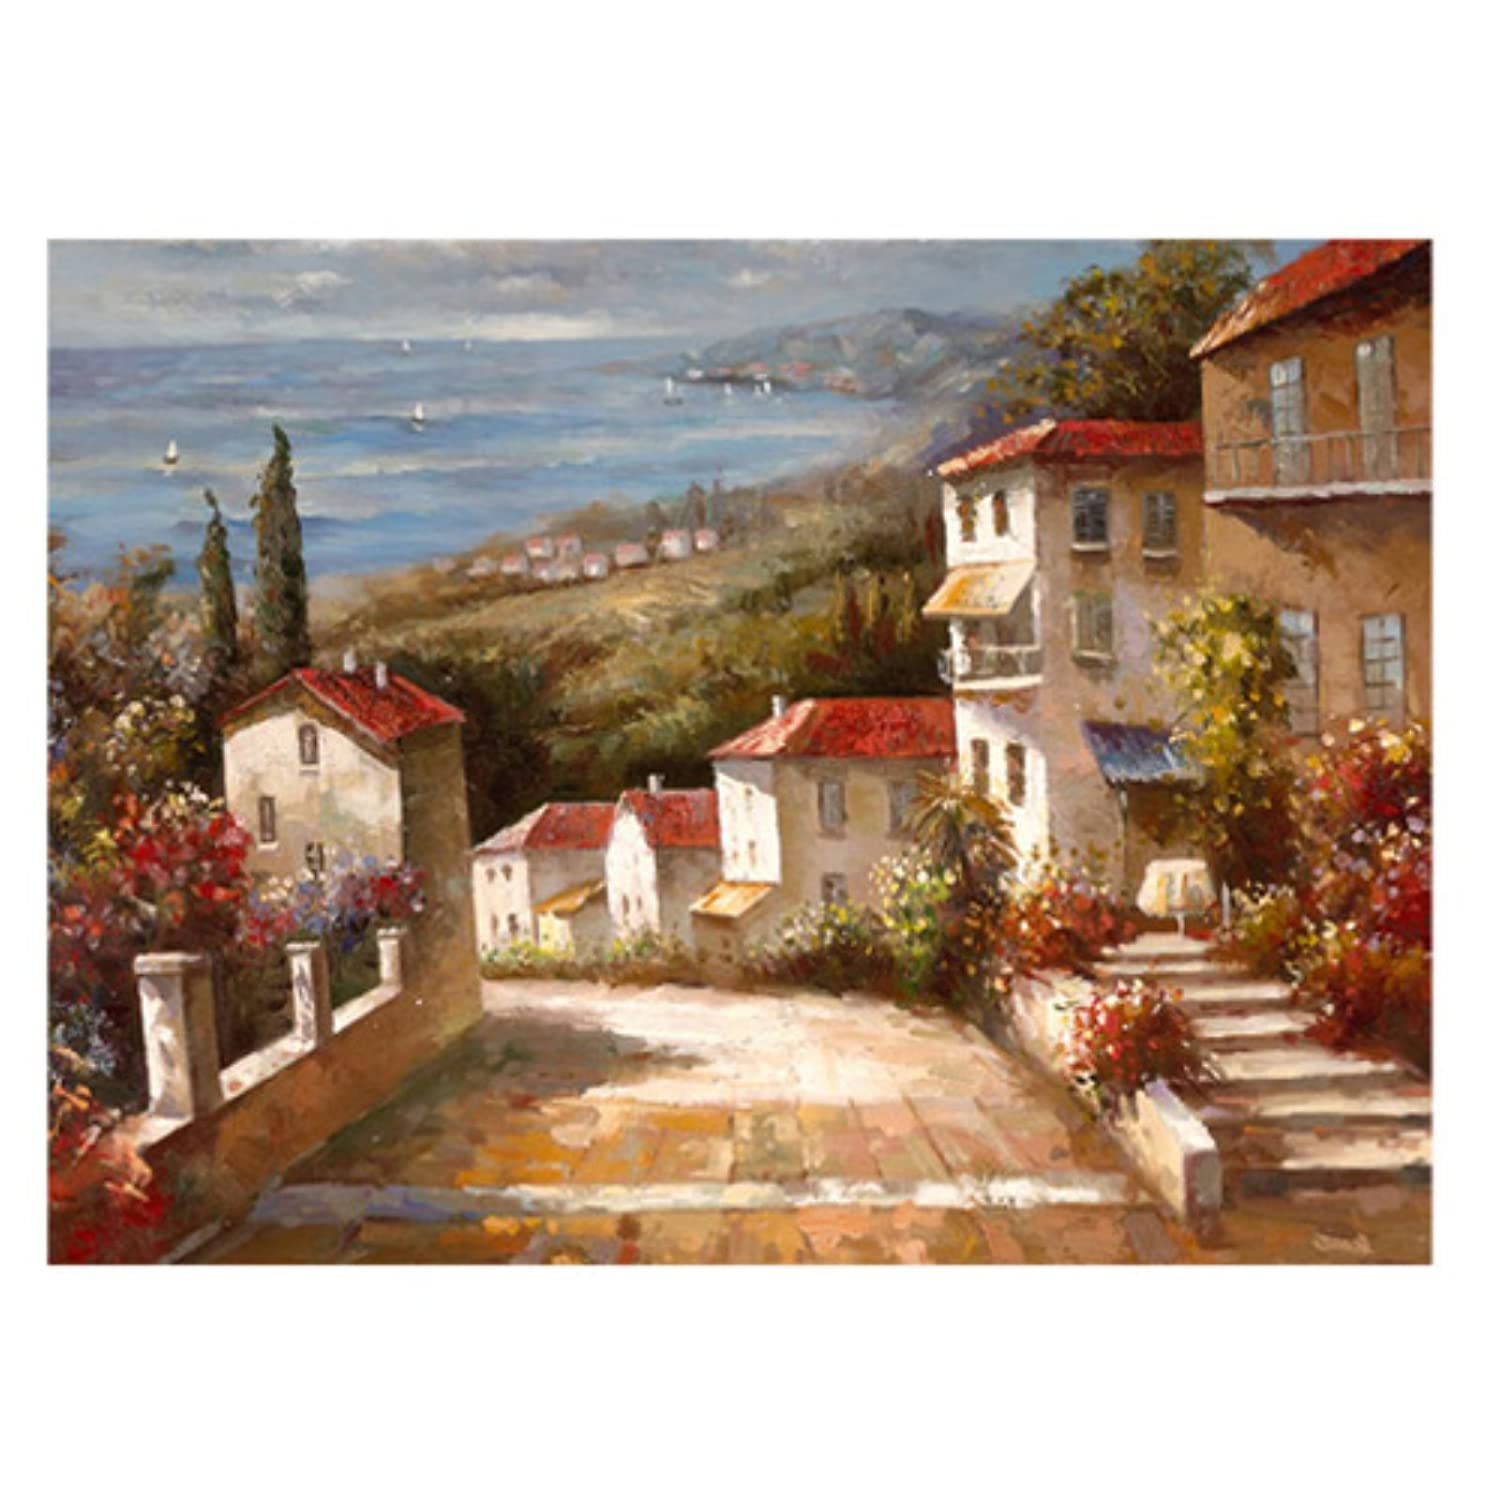 Home in Tuscany by Joval 18x24-Inch Canvas Wall Art